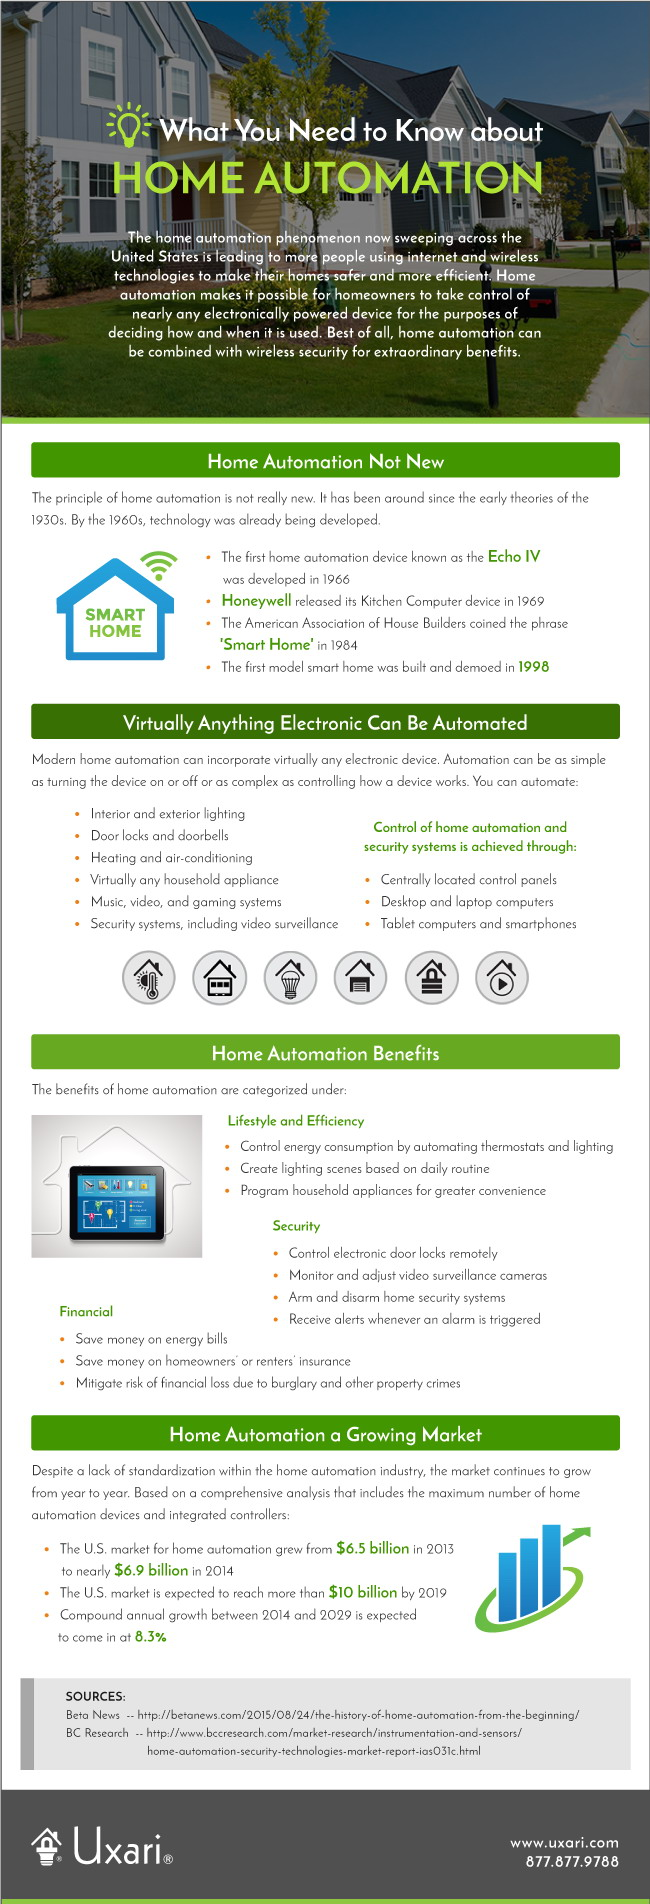 Uxari Home Automation